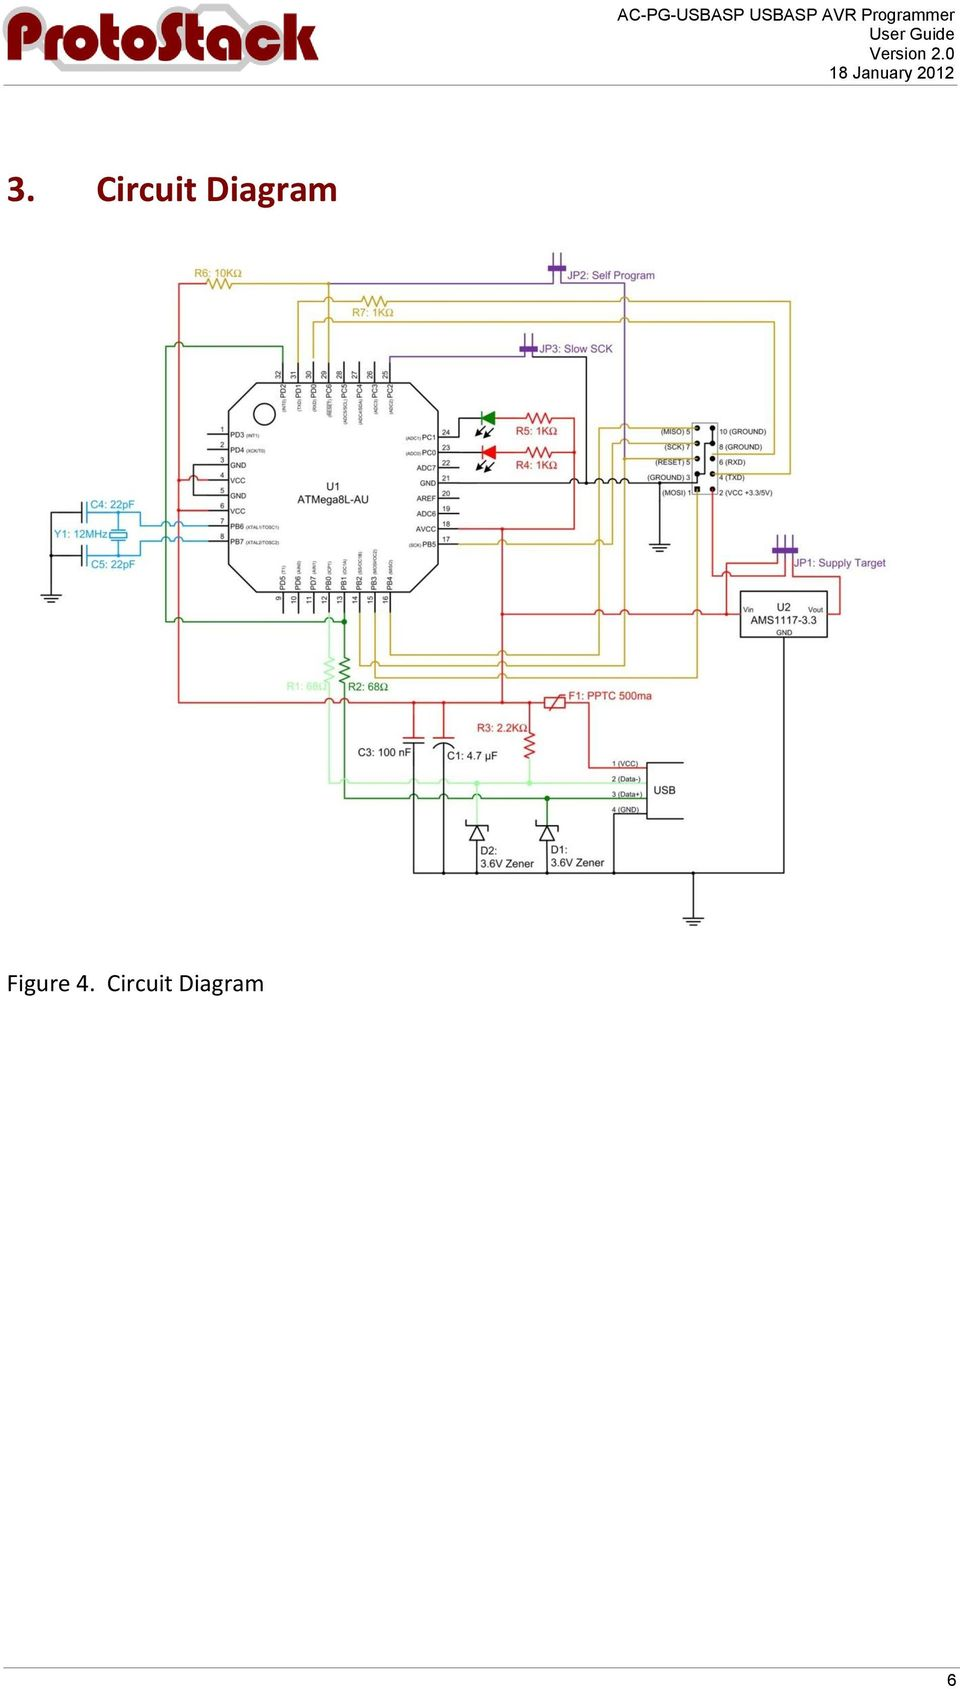 Ac Pg Usbasp Avr Programmer Pdf Pic Circuit Using The 41 Connecting To Your Computer Comprises Of 2 Steps A